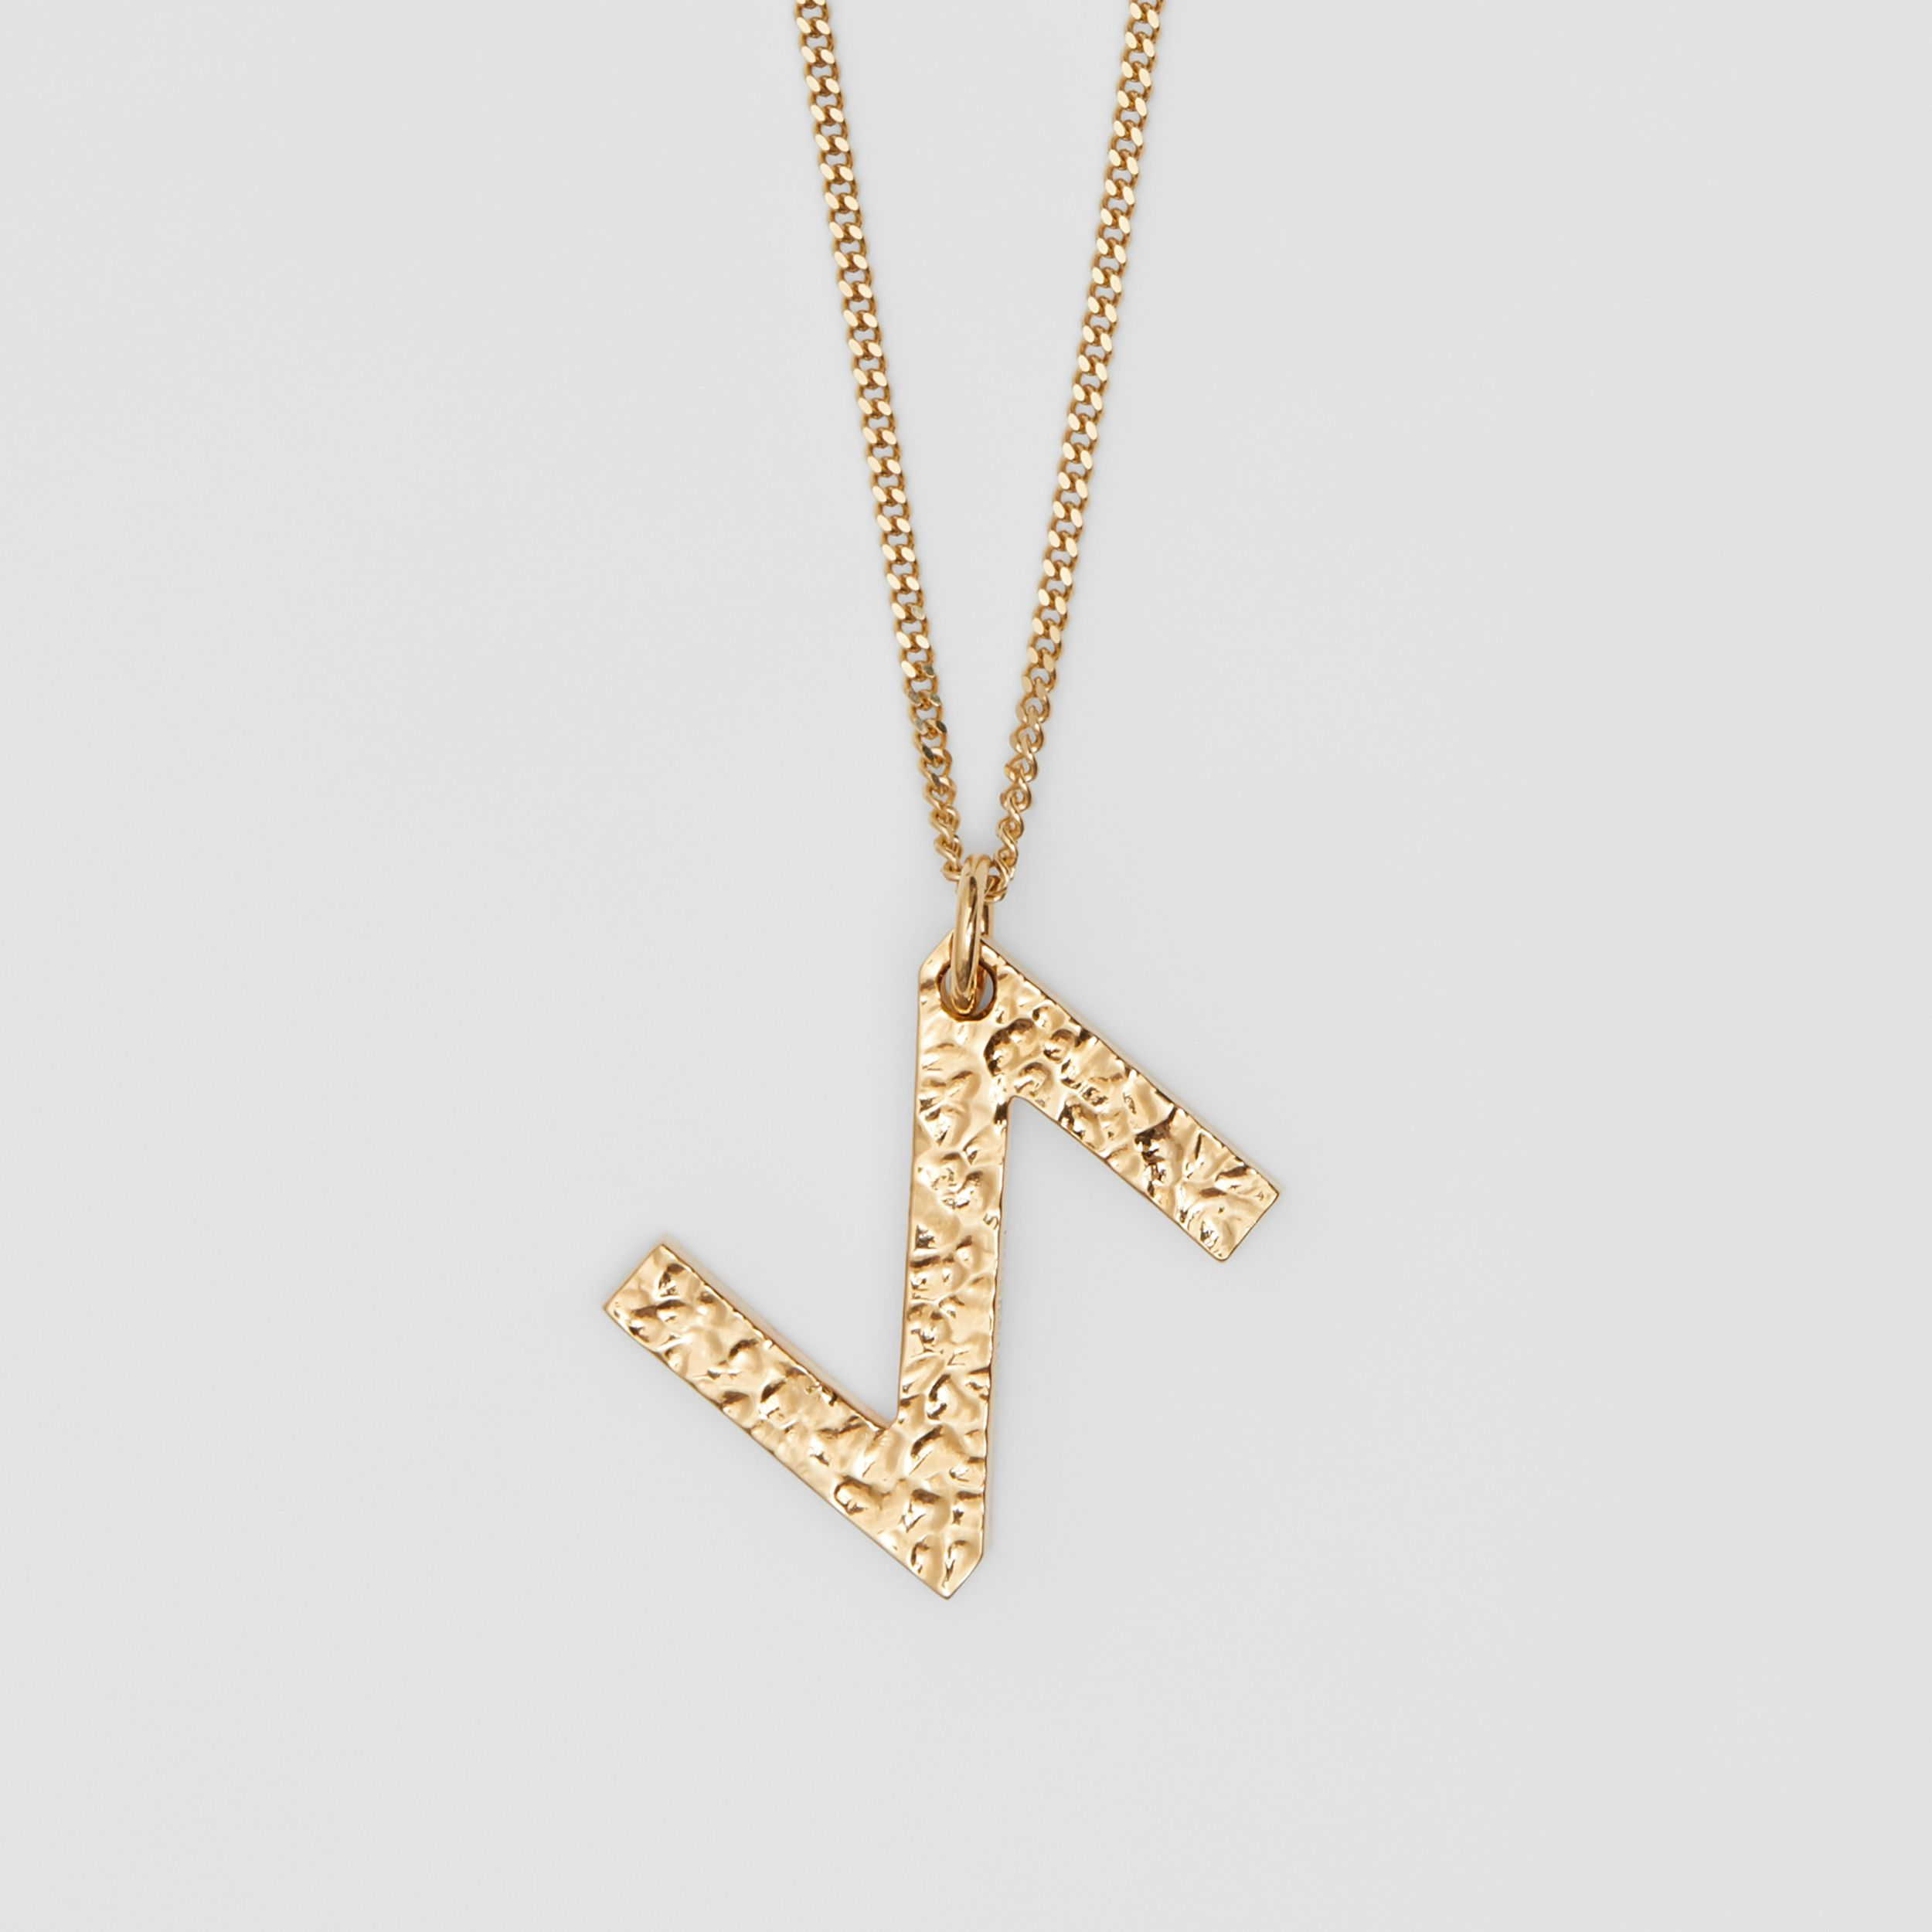 'Z' Alphabet Charm Gold-plated Necklace in Light - Women | Burberry - 3